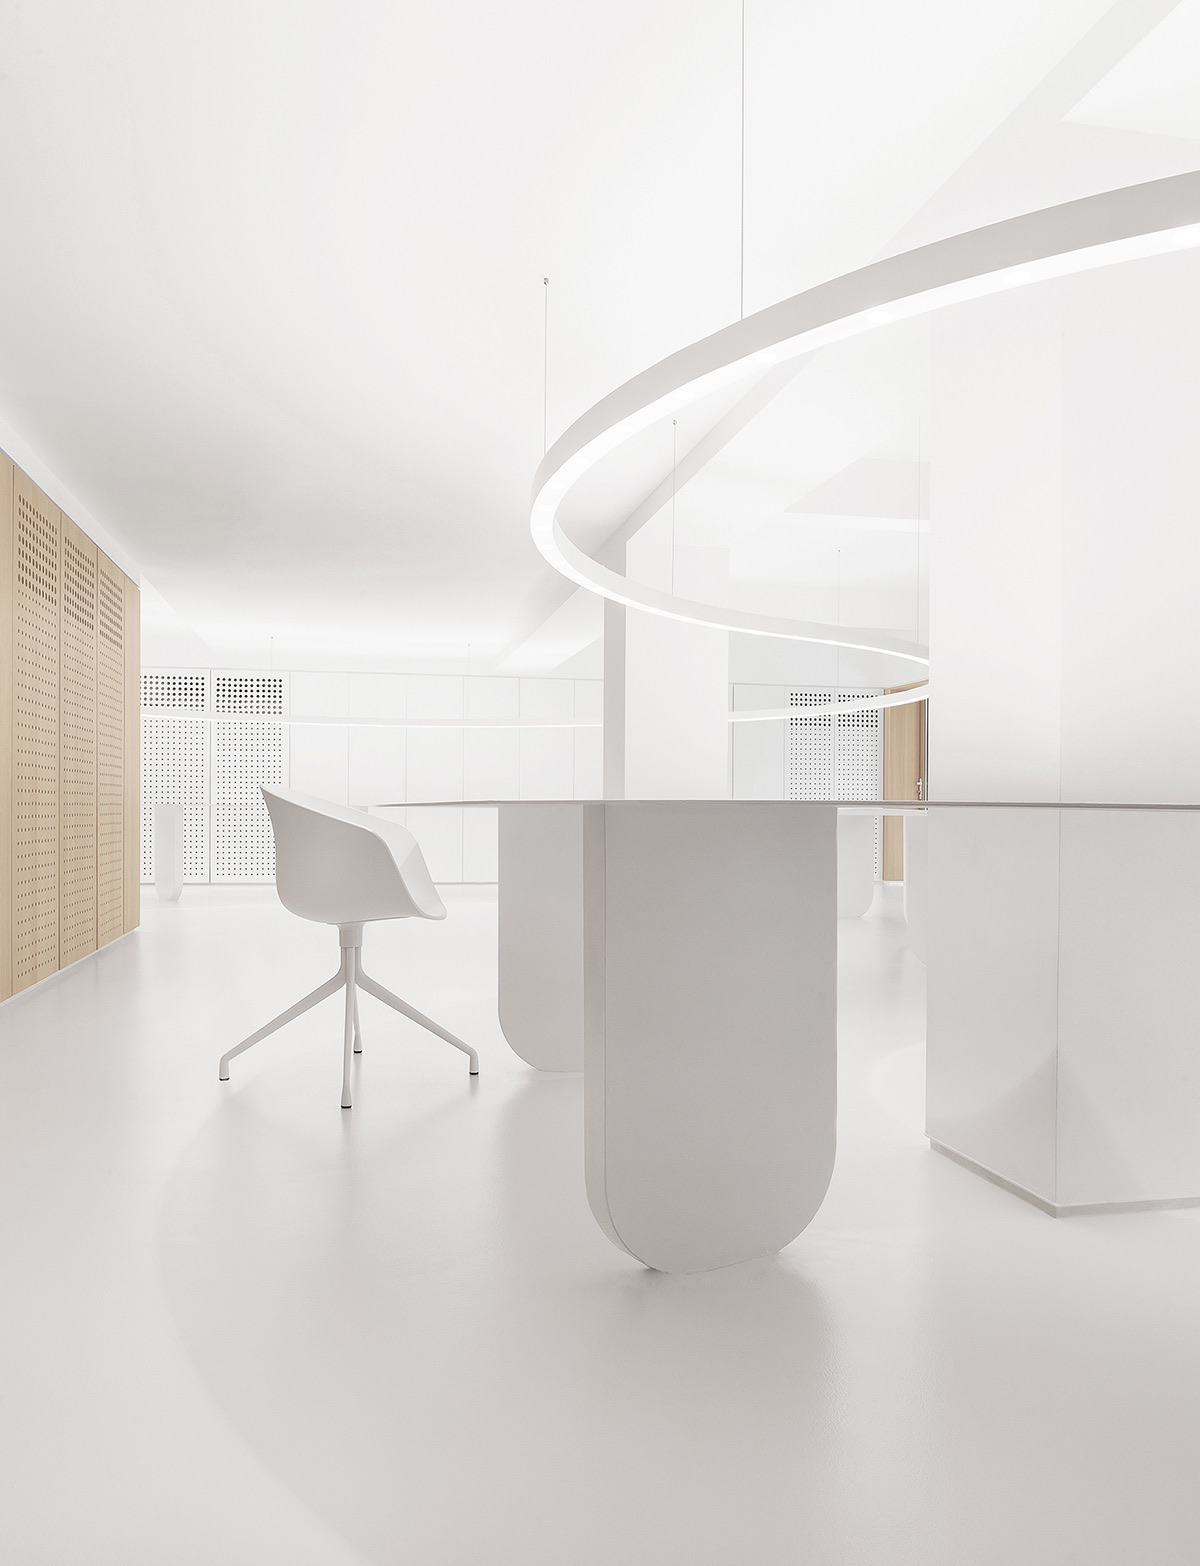 panda-design-office-xiamen-20